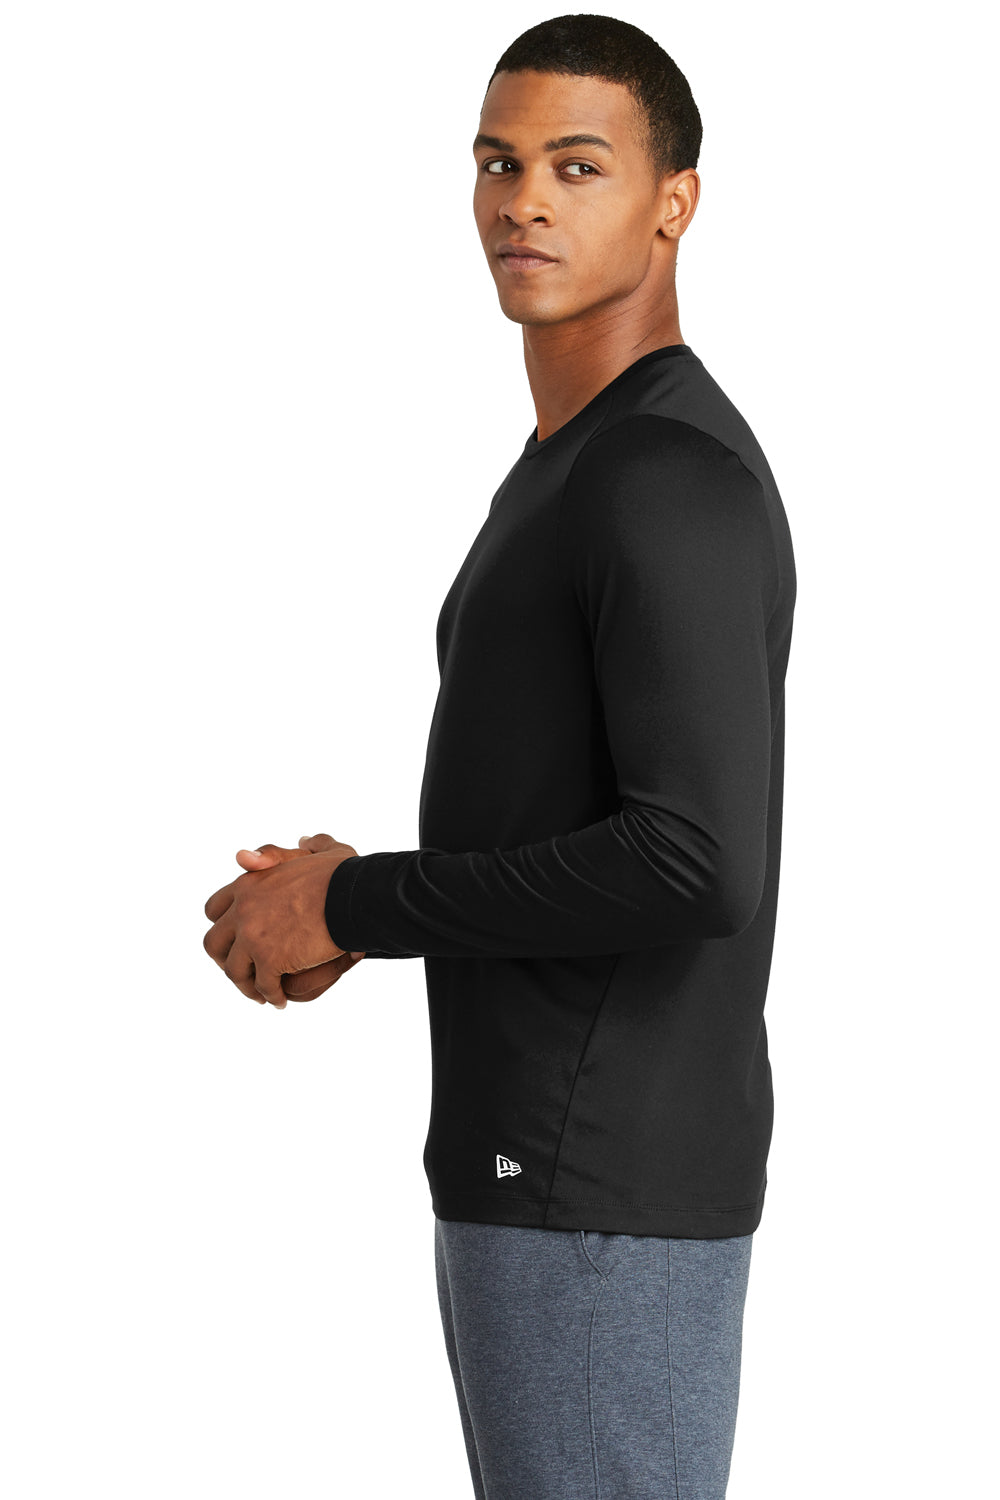 New Era NEA201 Mens Series Performance Moisture Wicking Long Sleeve Crewneck T-Shirt Black Side